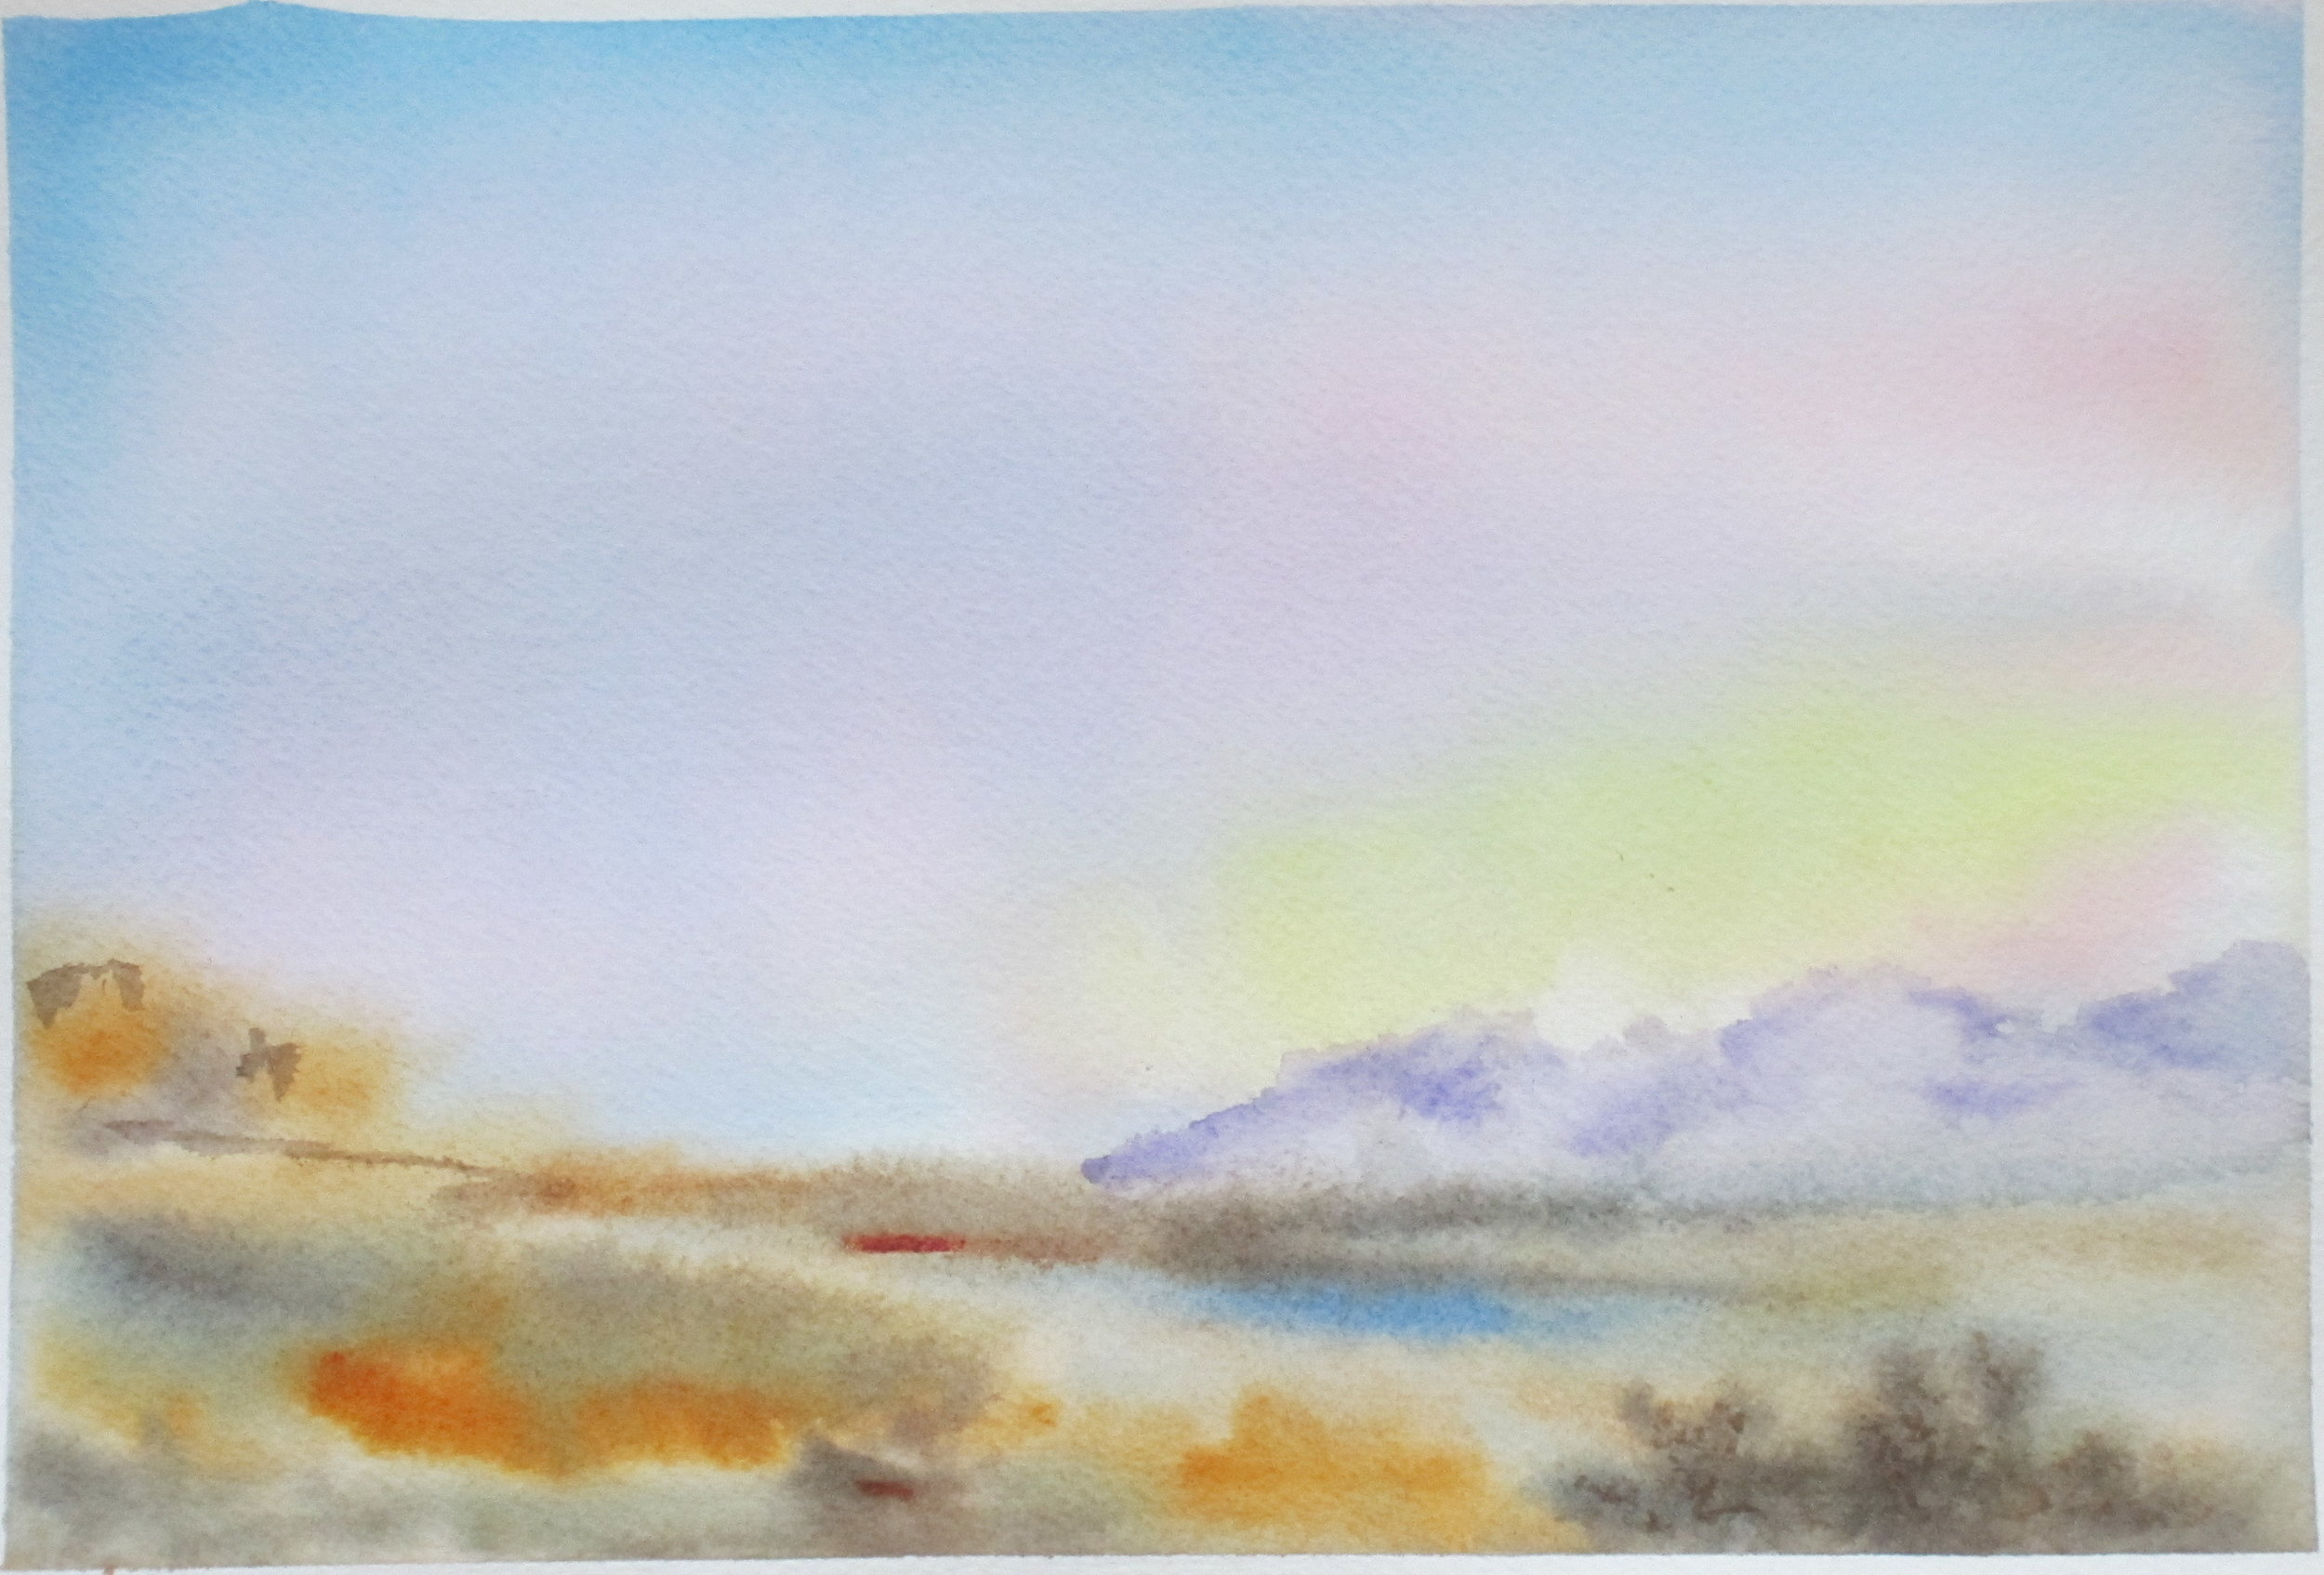 Awash with Light (watercolor)